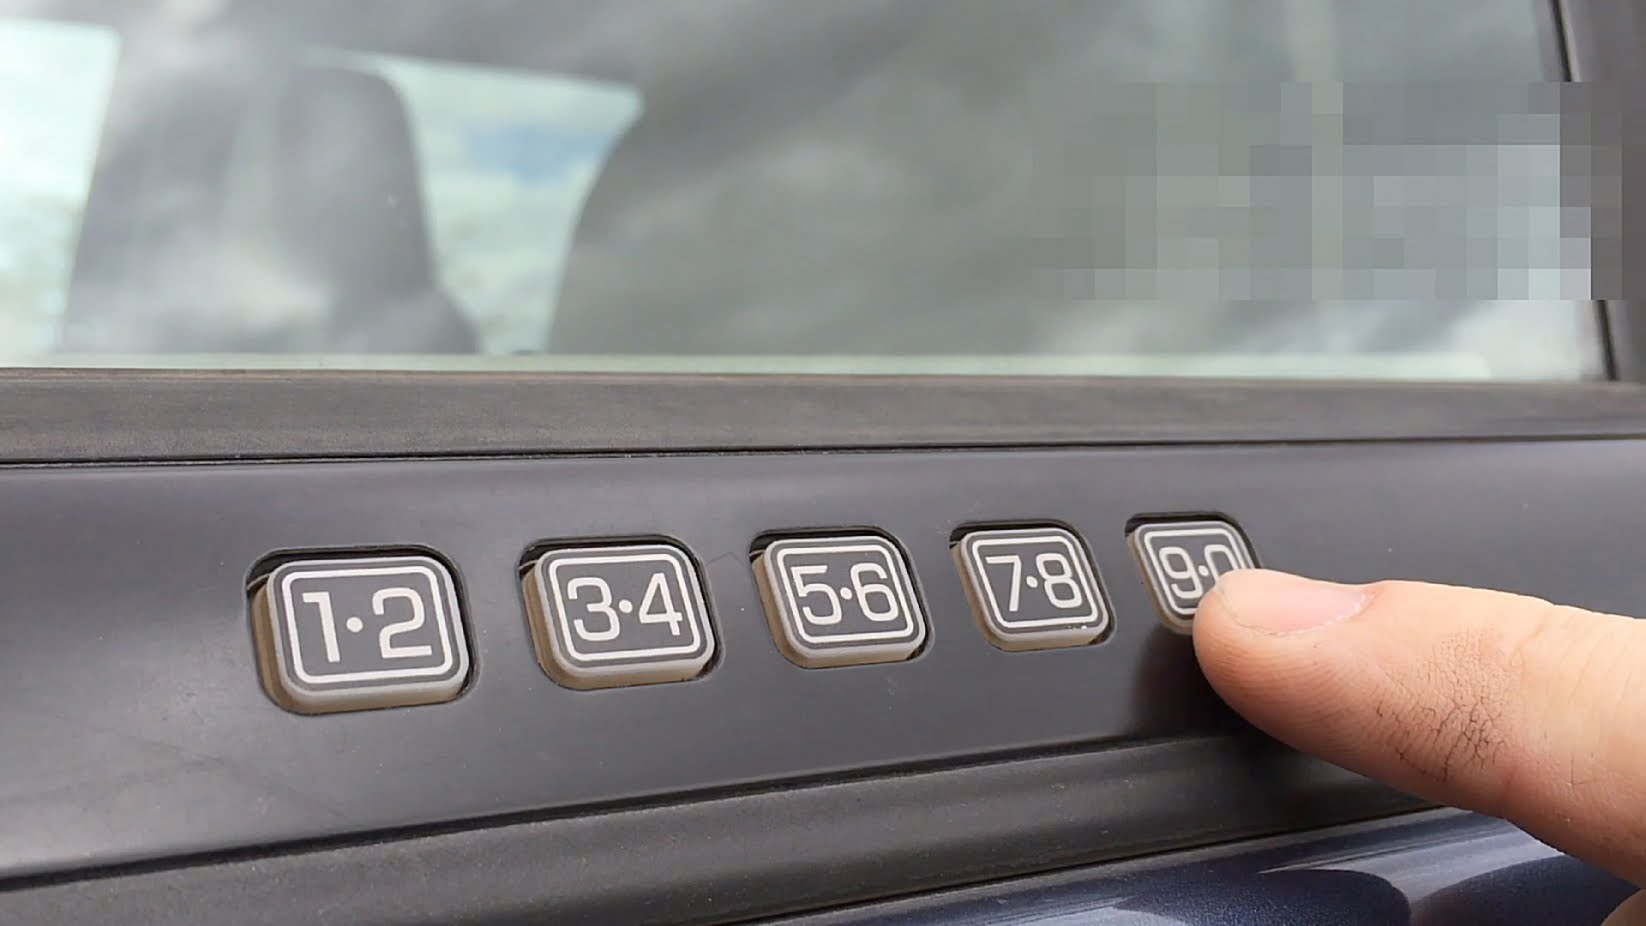 Qotd Ford Owners Do You Still Remember Your Keyless Entry Code